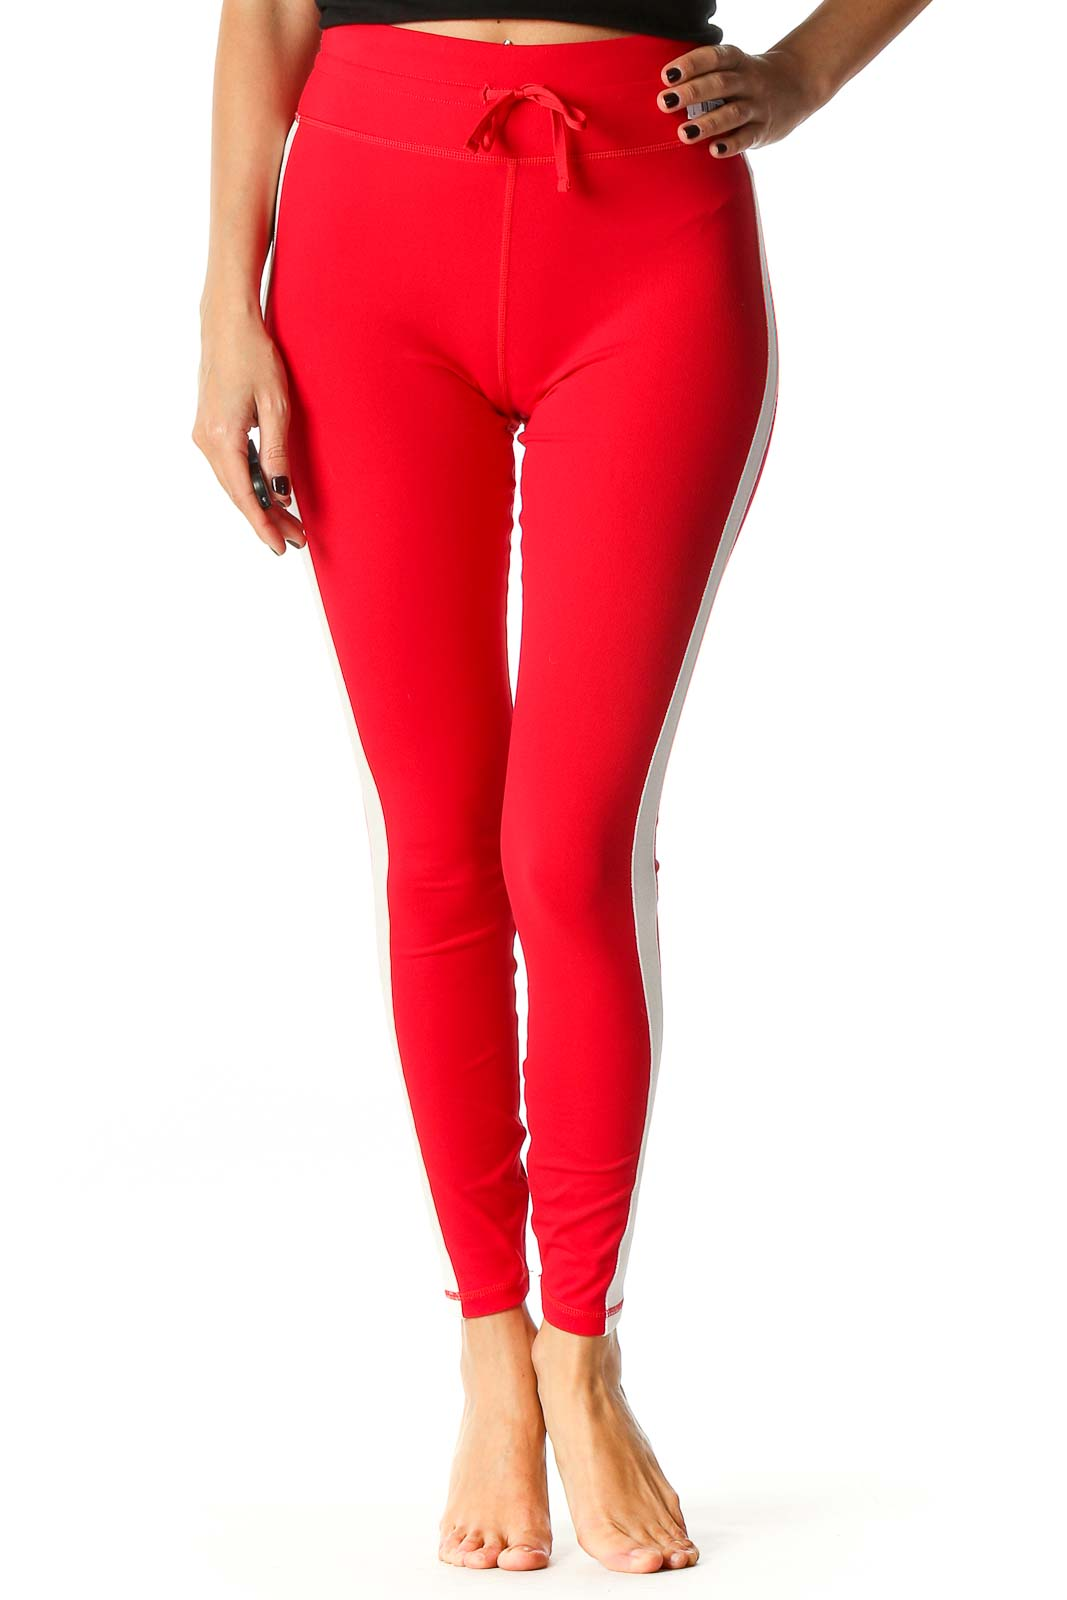 Red Solid Casual Leggings Front